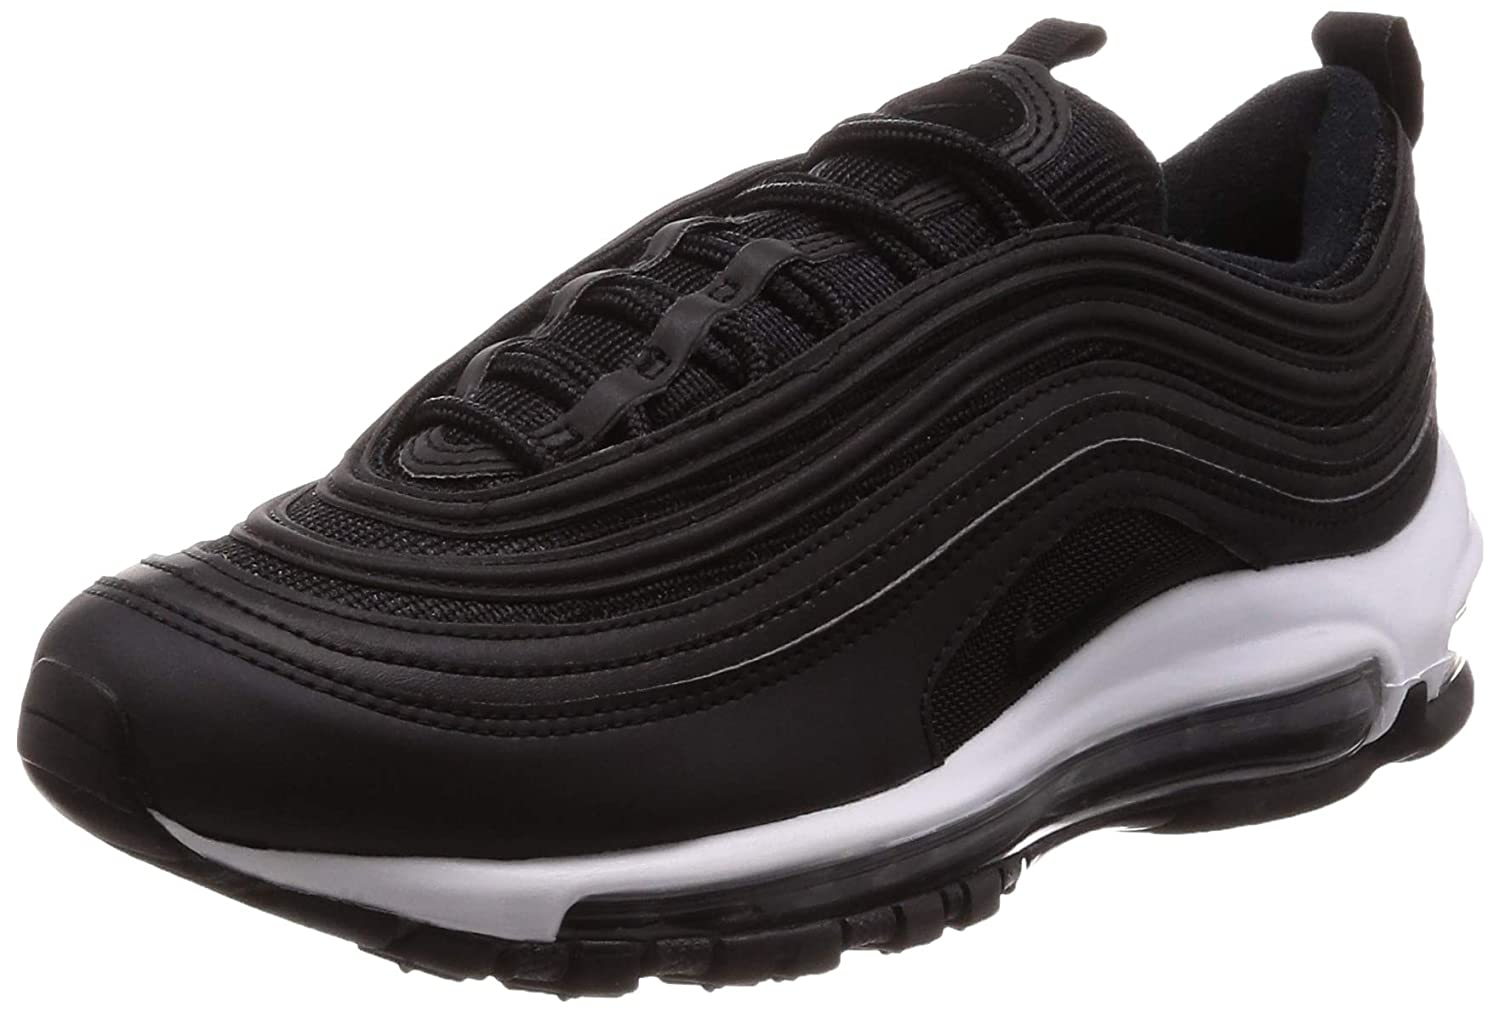 official photos 12eef 44994 Nike Womens Air Max 97 Textile Synthetic Trainers